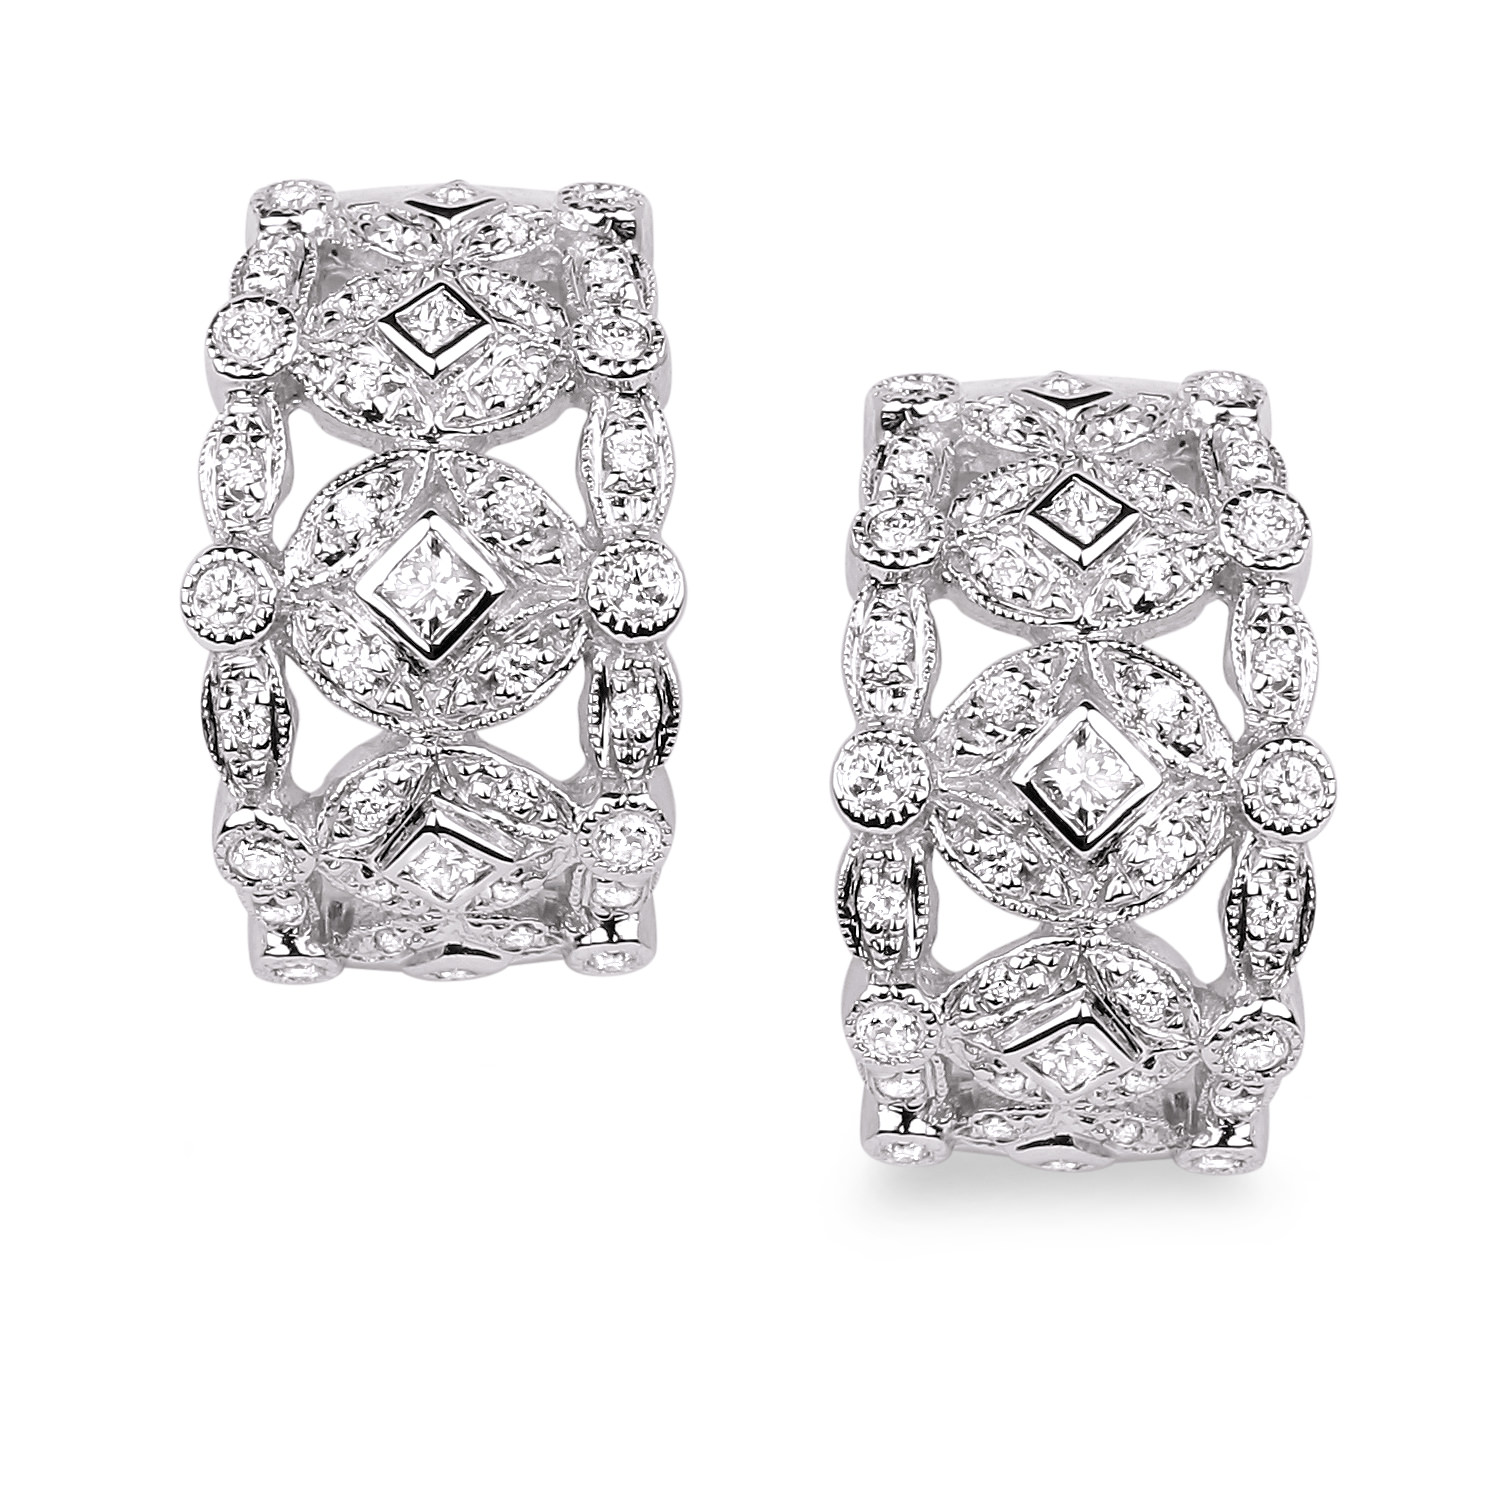 Diamond Hoop Earrings SGE254 (Earrings)